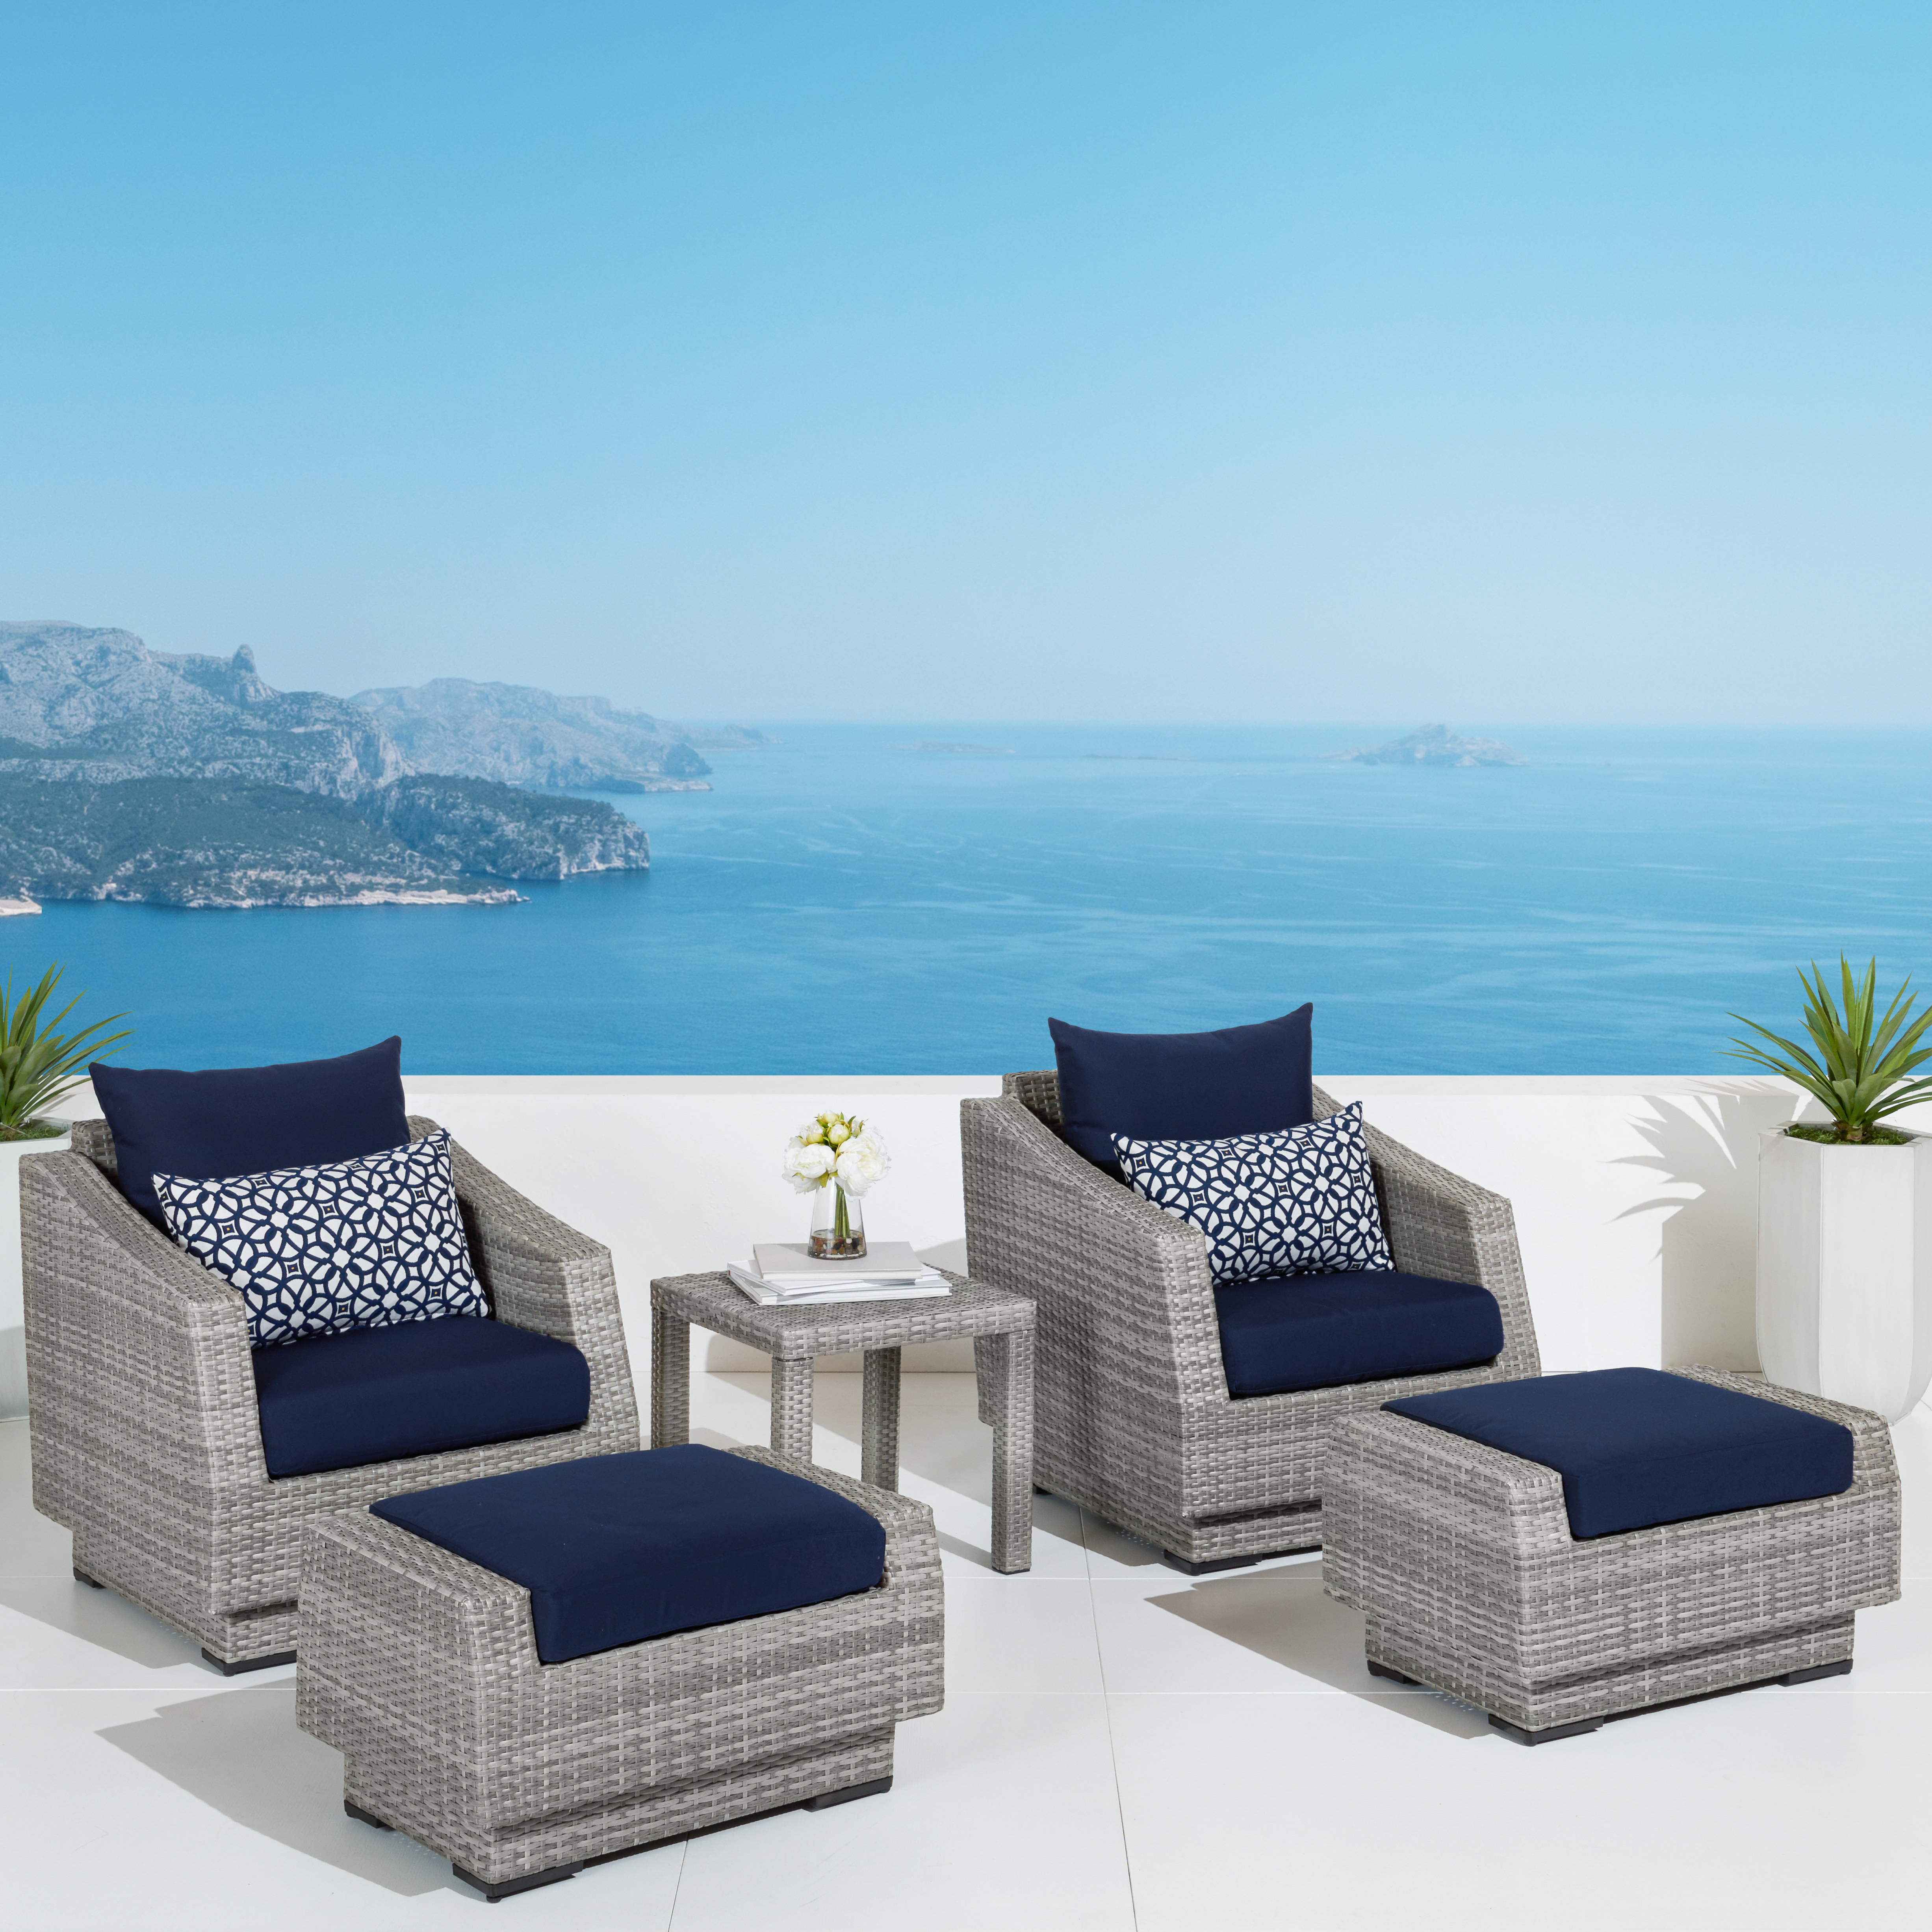 Castelli 5 Piece Rattan Conversation Set With Cushions In Favorite Castelli Patio Sofas With Sunbrella Cushions (View 2 of 20)